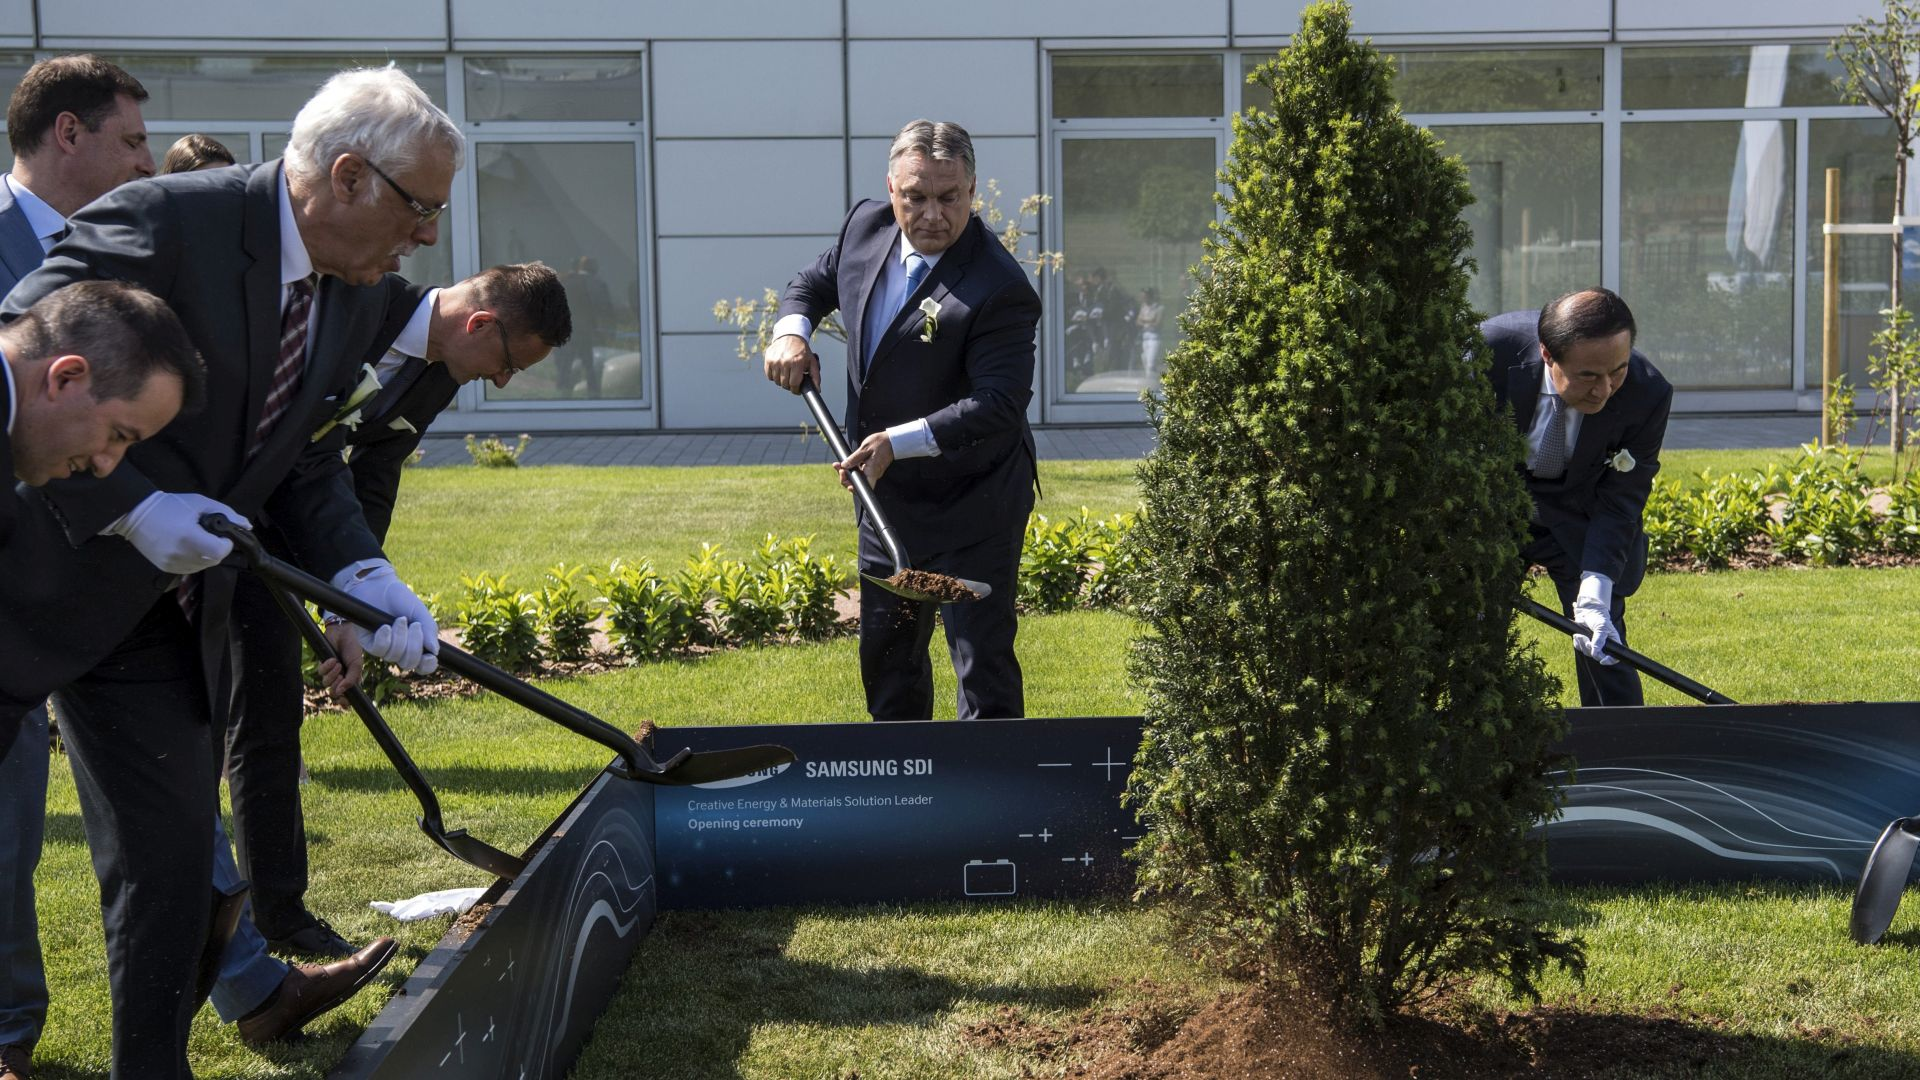 Decision makers of the company and the government planted a tree in at the plant together